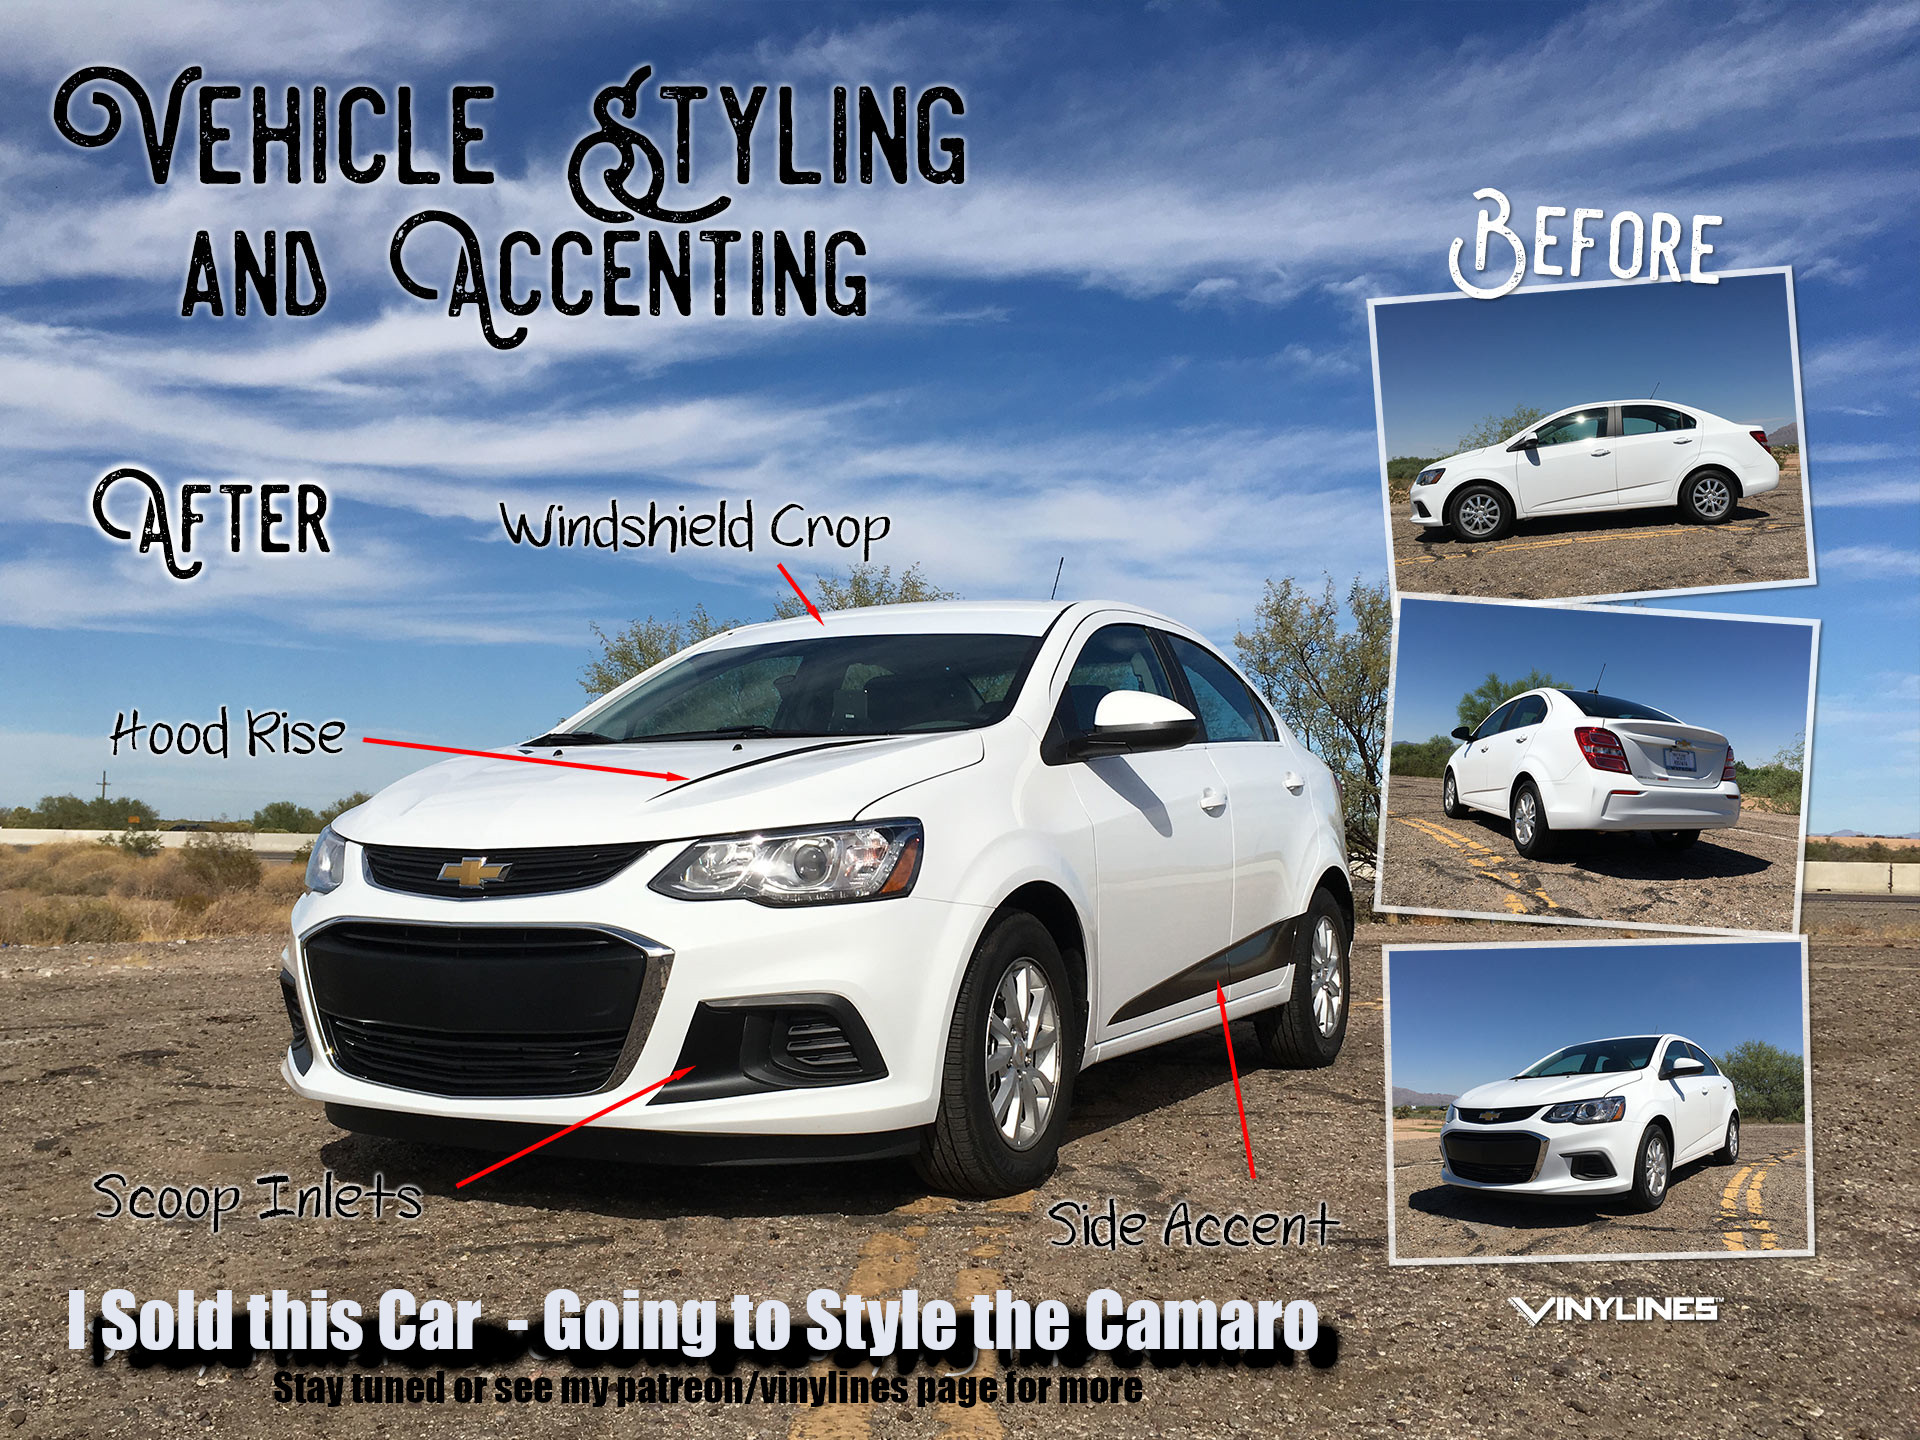 Vehicle Styling and Accenting